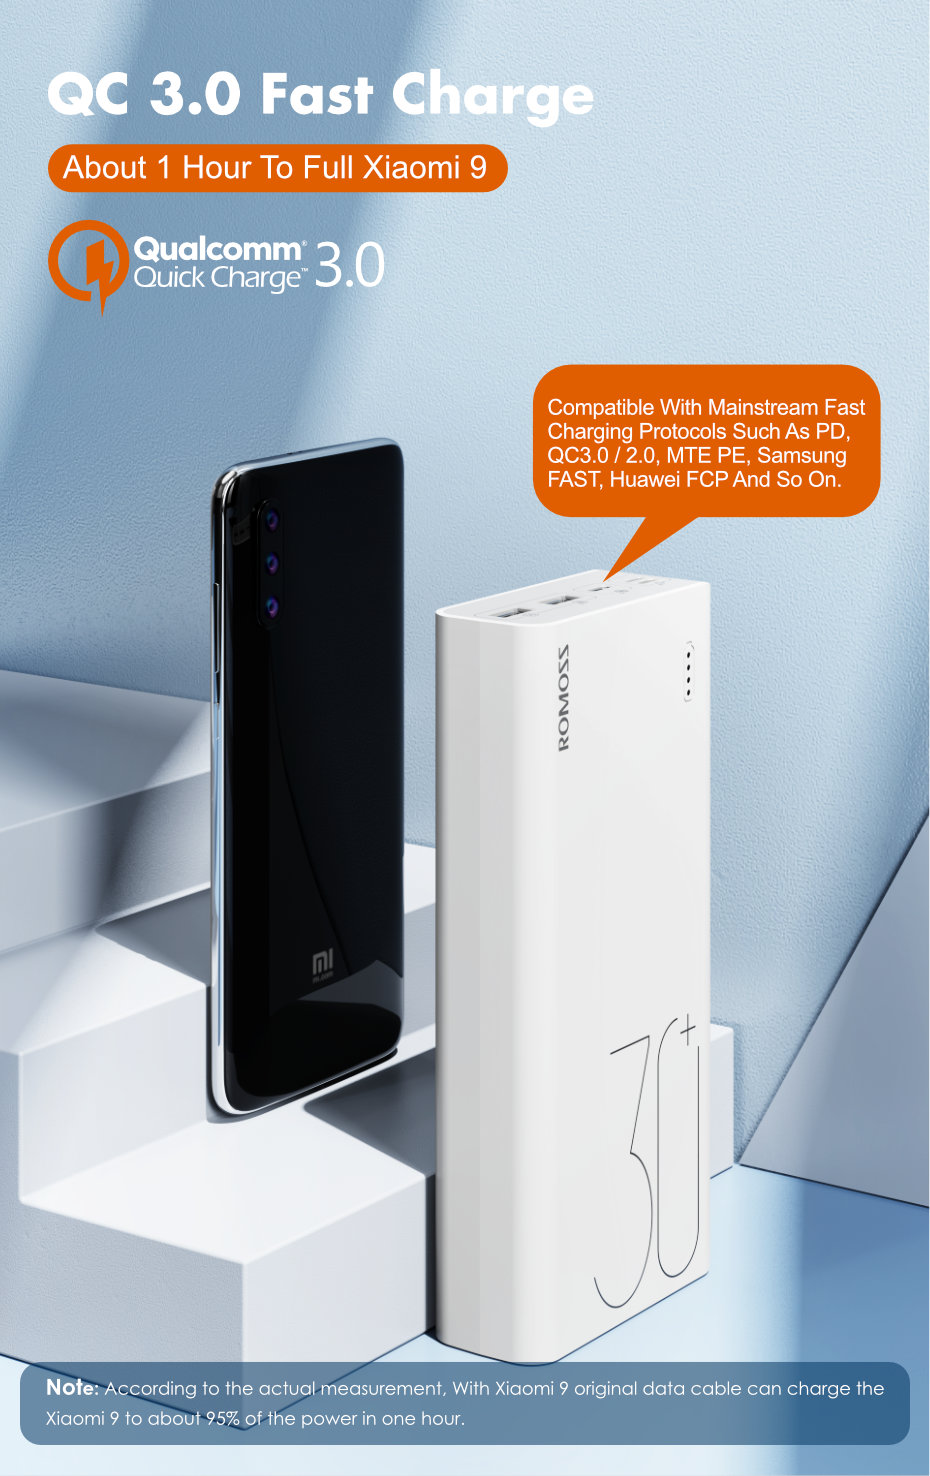 Hf59d7e32a863465eb254221522d2f685i - ROMOSS Sense 8 Power Bank 30000mAh QC PD 3.0 Fast Charging Powerbank 30000 mAh External Battery Charger For iPhone Xiaomi Mi